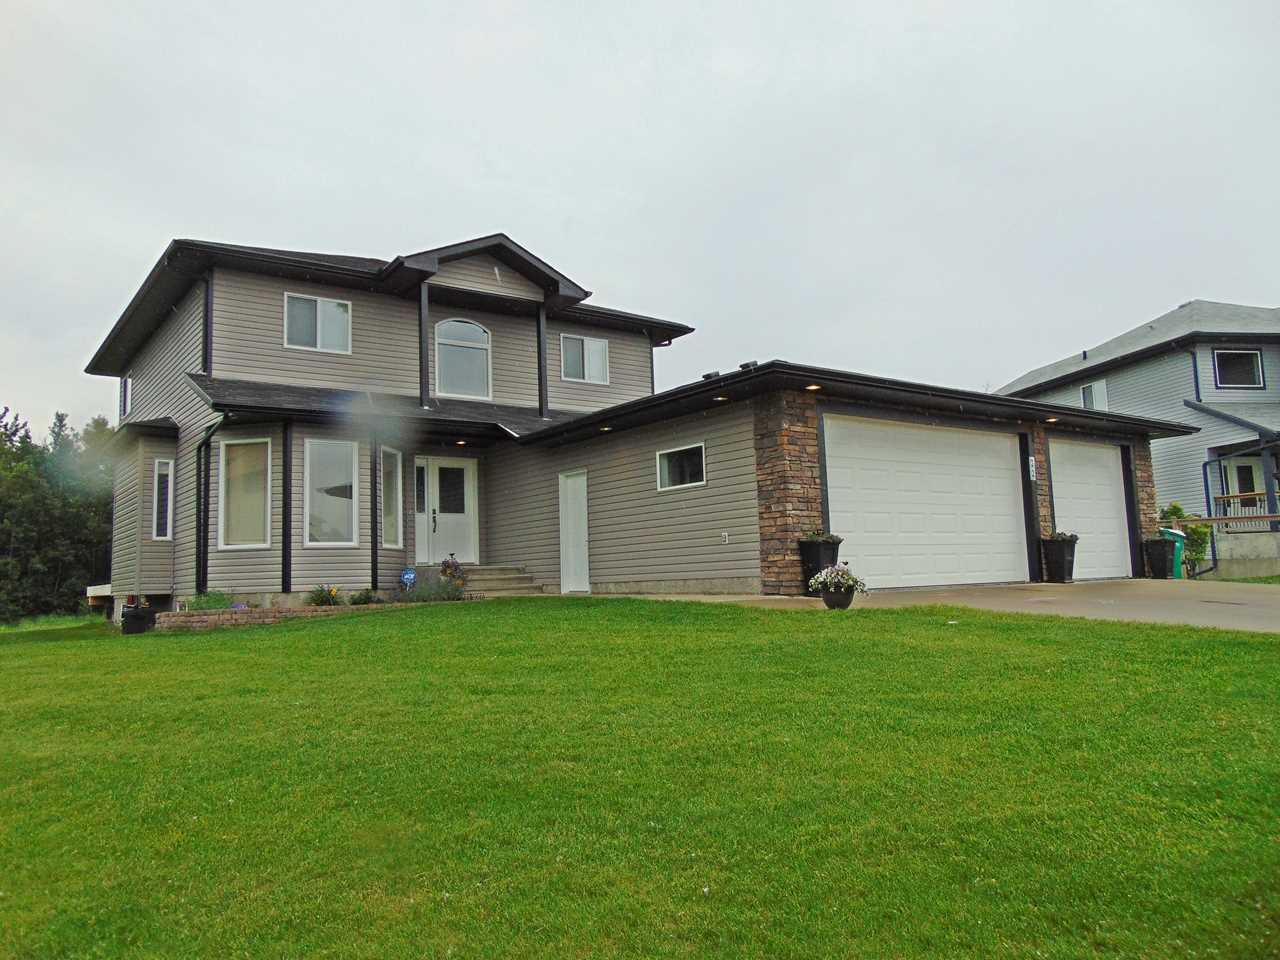 Main Photo: 22 Landing Trails Drive: Gibbons House for sale : MLS(r) # E4051279